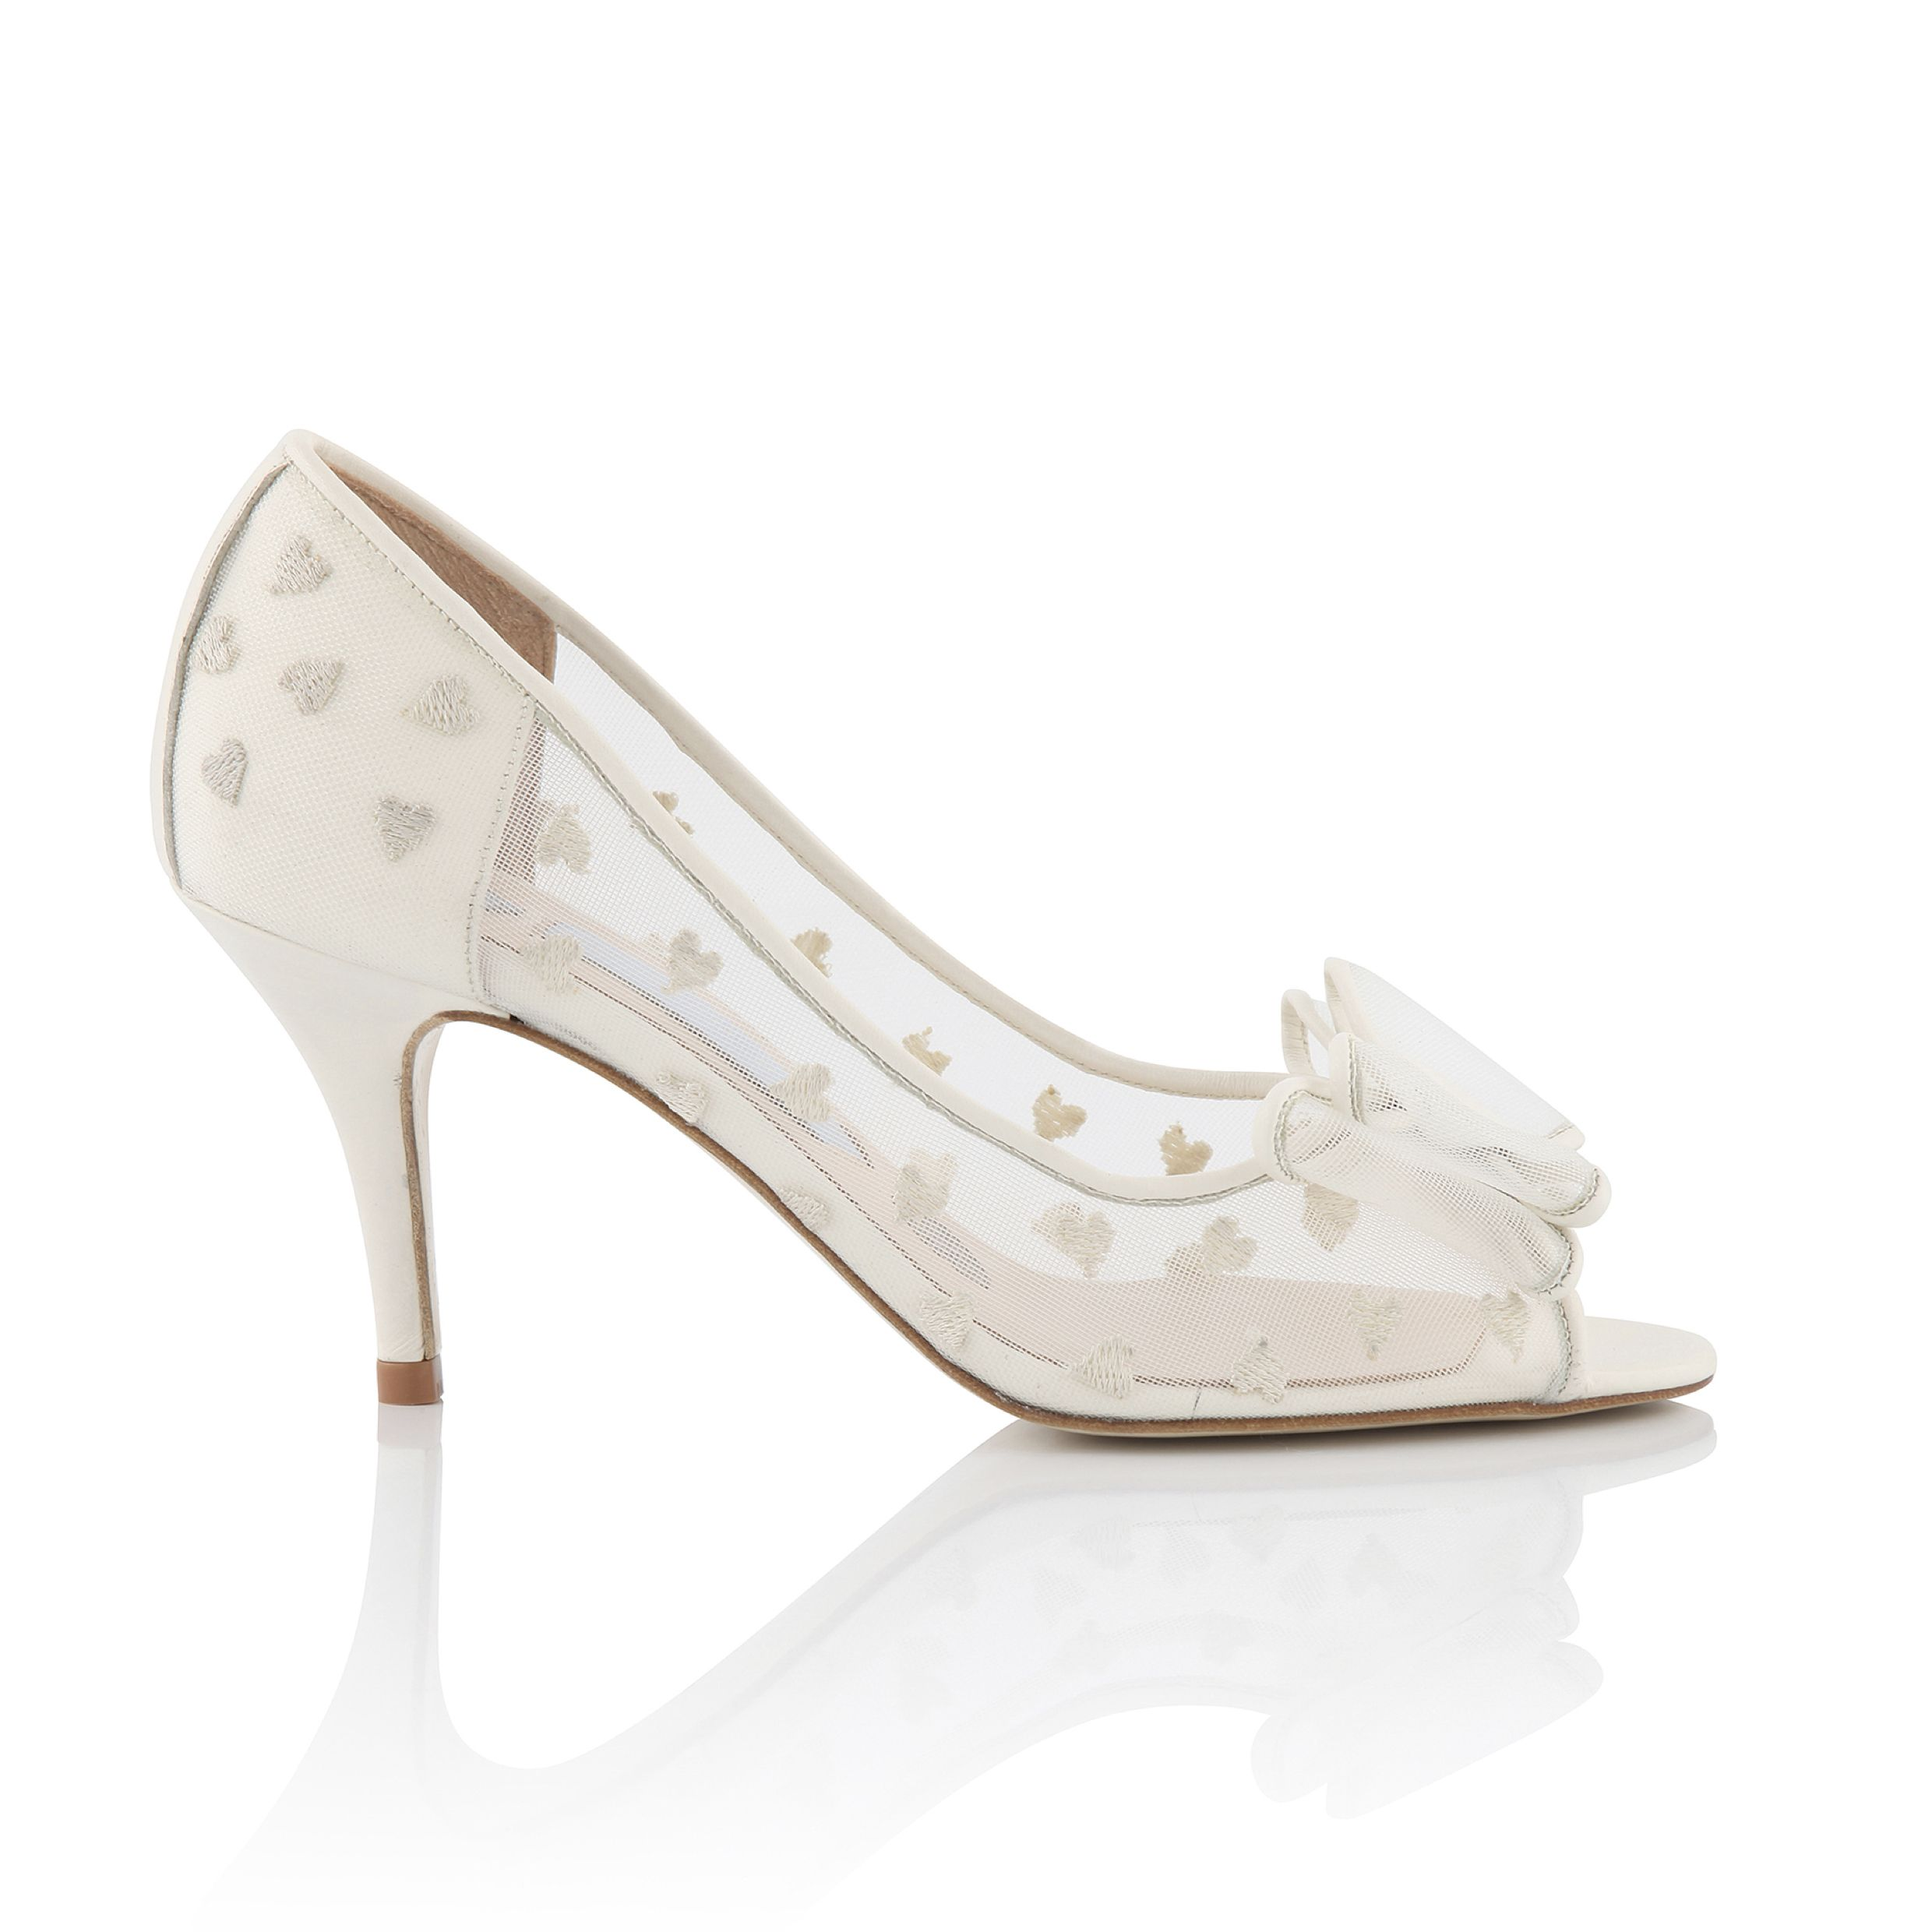 http://www.bellissimabridalshoes.com/bridal-shoes/ivory-wedding ...